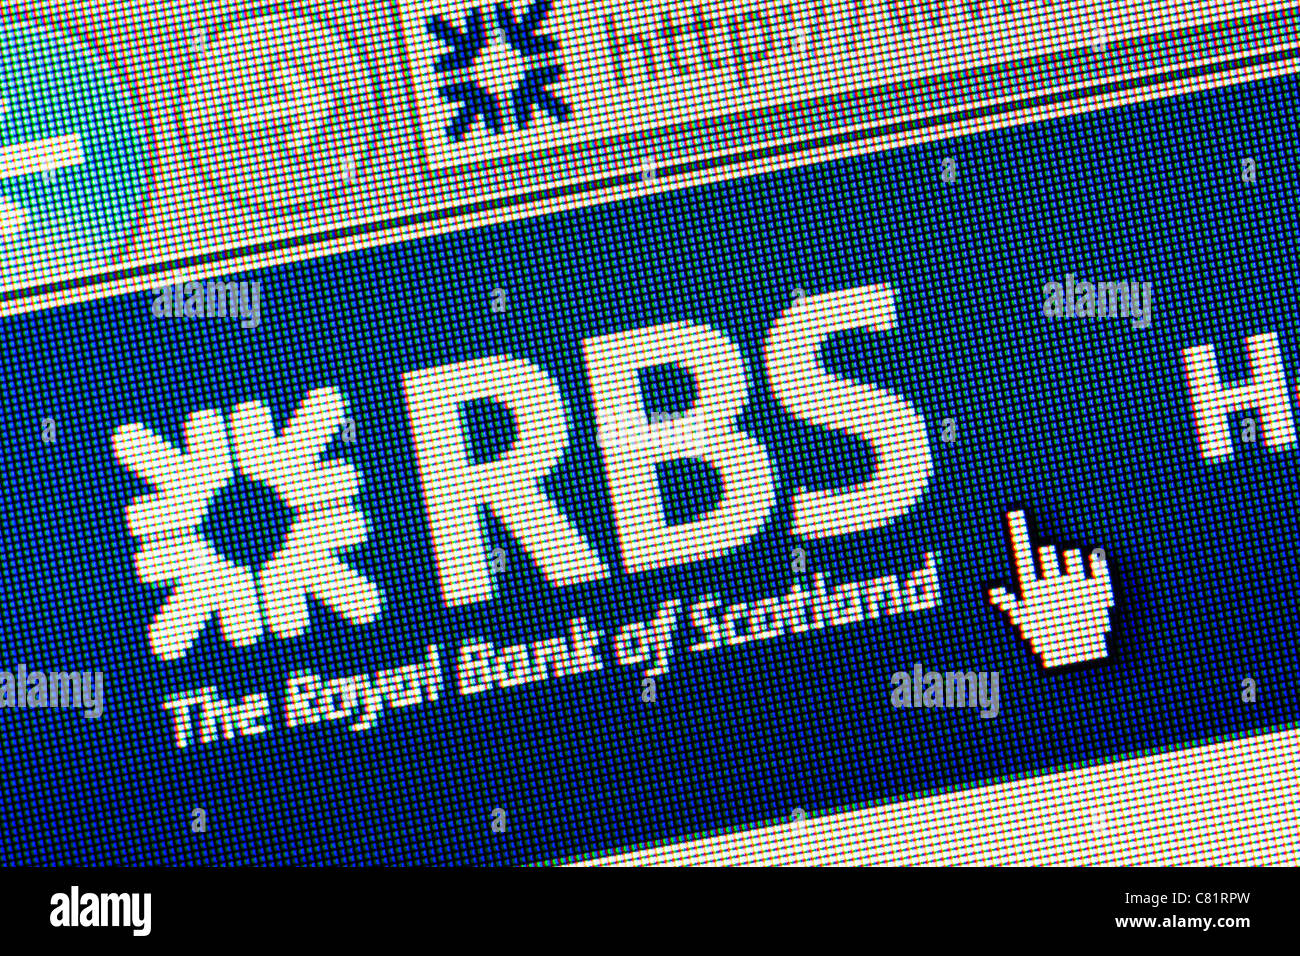 Royal Bank of Scotland RBS logo and website close up Stock Photo